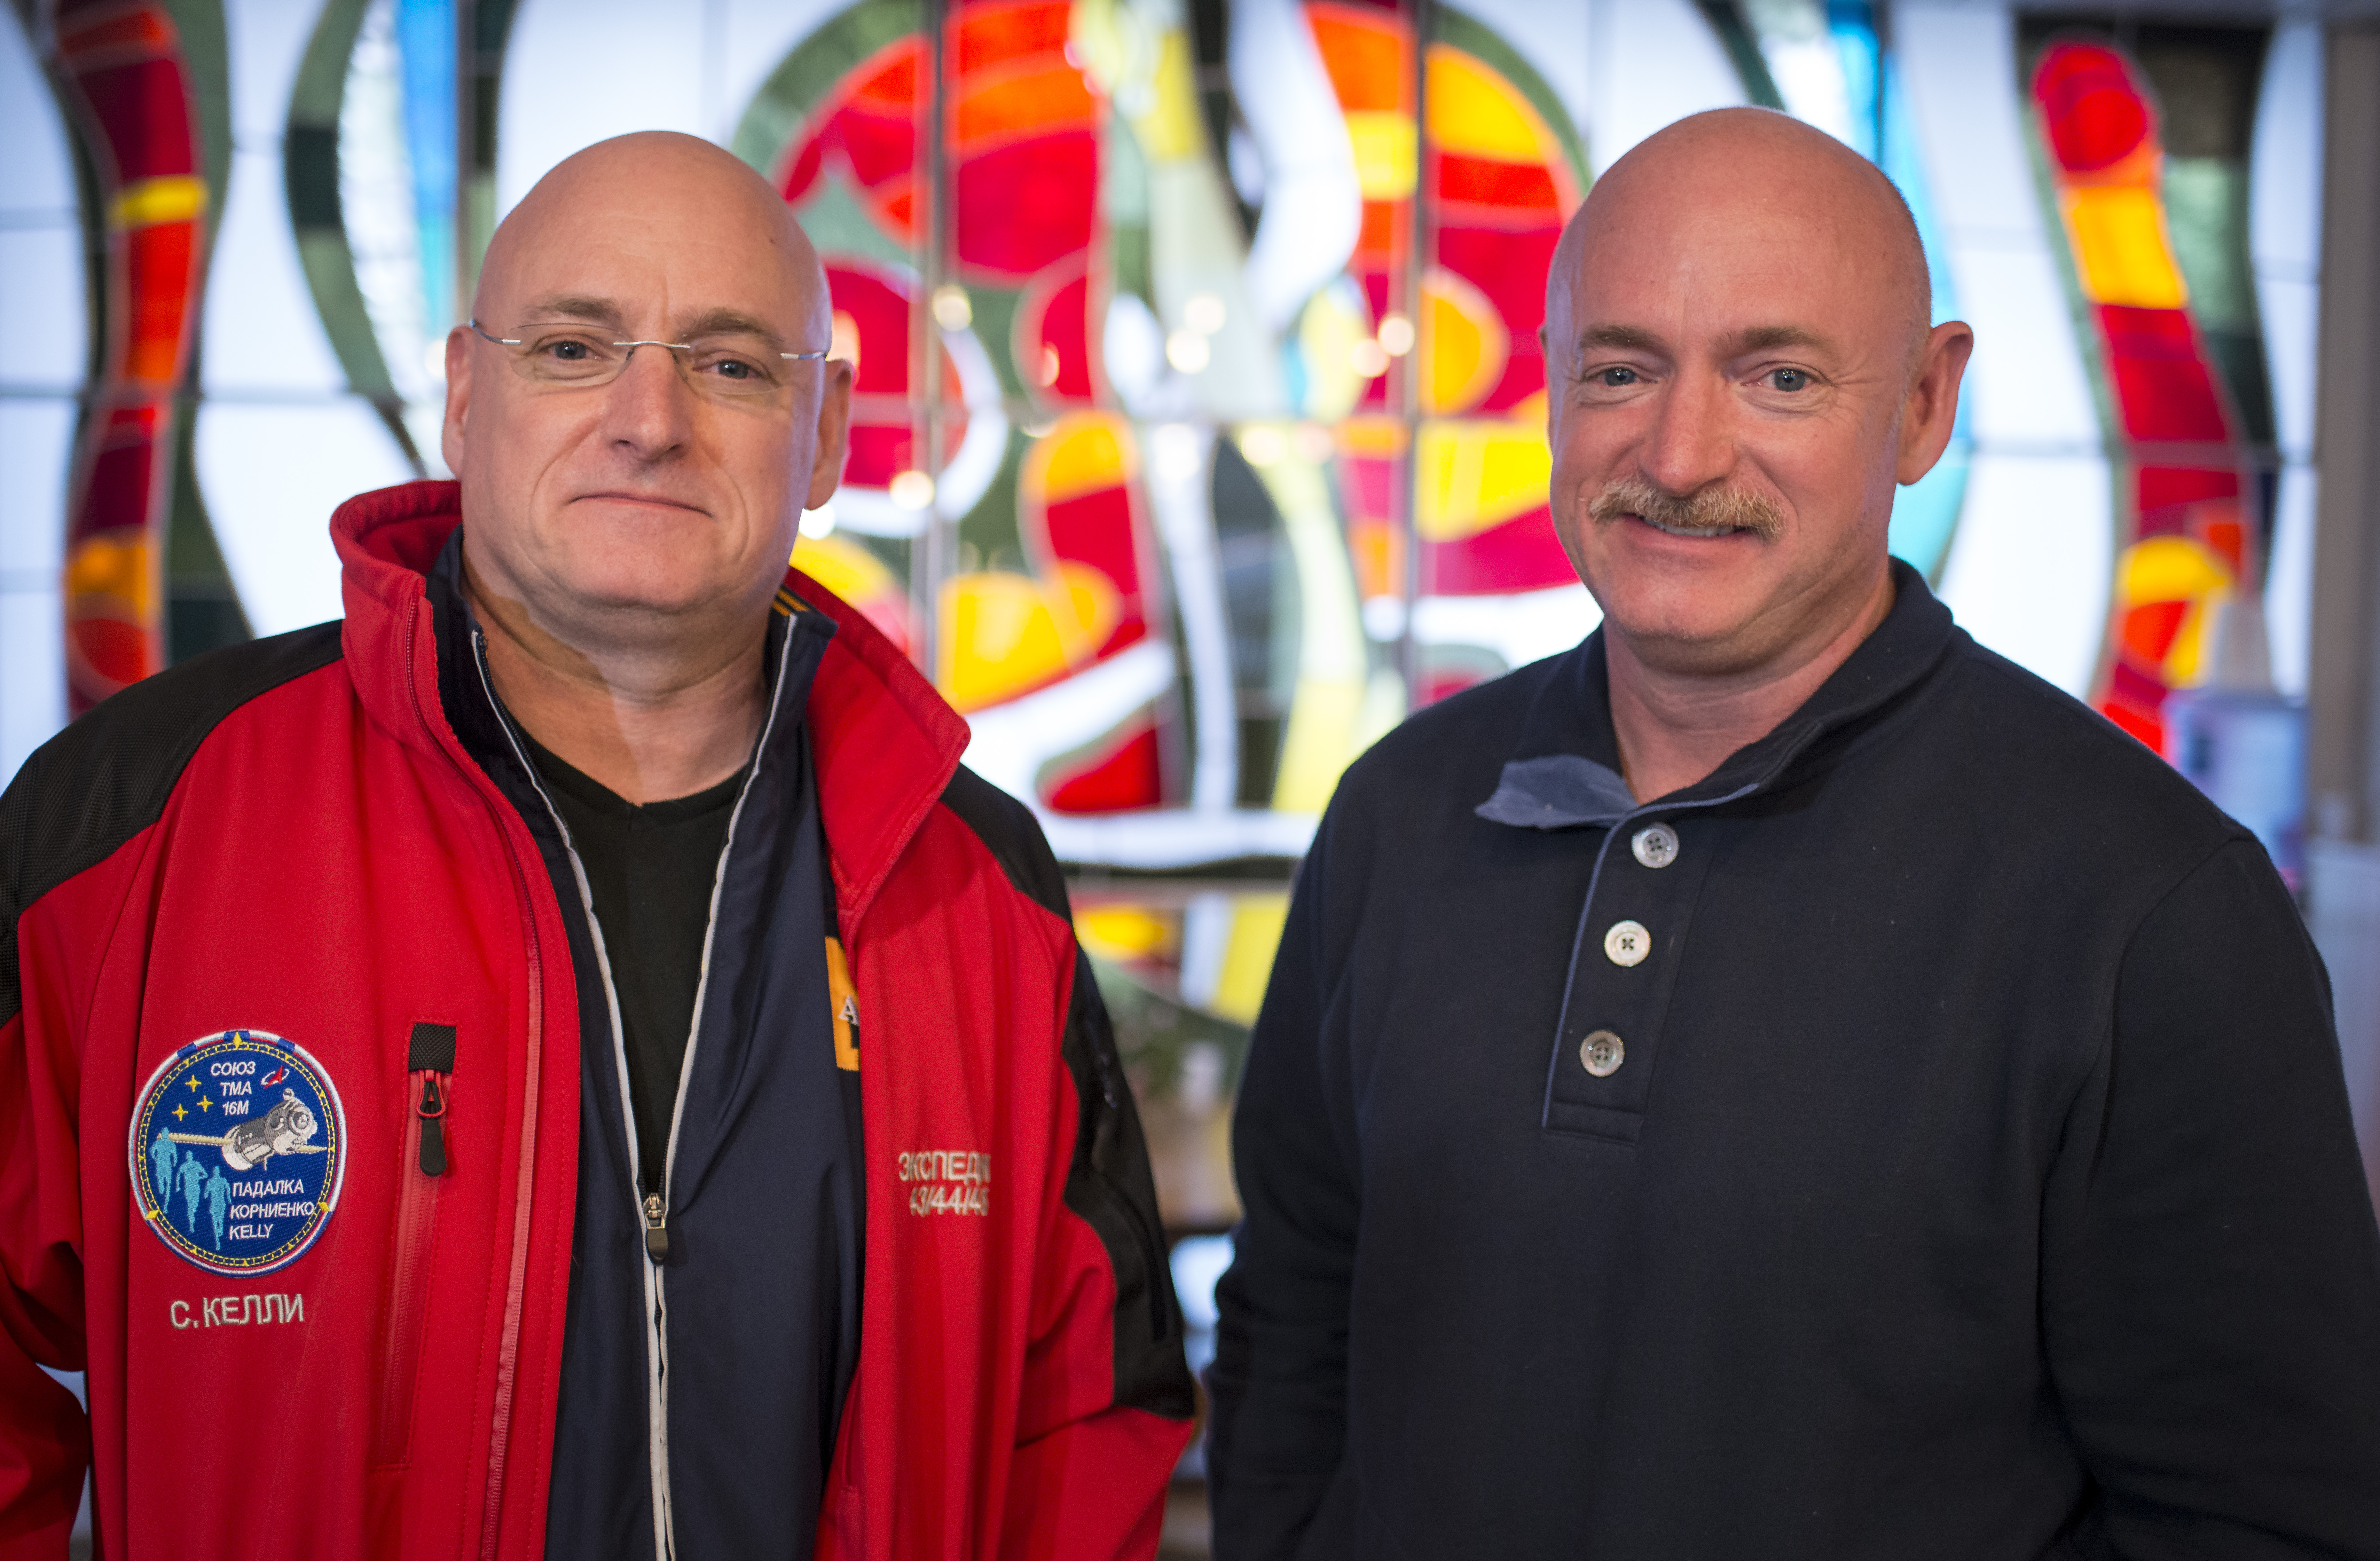 Expedition 43 NASA Astronaut Scott Kelly, left, and his identical twin brother Mark Kelly, pose for a photograph Thursday, March 26, 2015 at the Cosmonaut Hotel in Baikonur, Kazakhstan. Scott Kelly, and Russian Cosmonauts Mikhail Kornienko, and Gennady Padalka of the Russian Federal Space Agency (Roscosmos) are scheduled to launch to the International Space Station in the Soyuz TMA-16M spacecraft from the Baikonur Cosmodrome in Kazakhstan March 28, Kazakh time (March 27 Eastern time.) As the one-year crew, Kelly and Kornienko will return to Earth on Soyuz TMA-18M in March 2016.